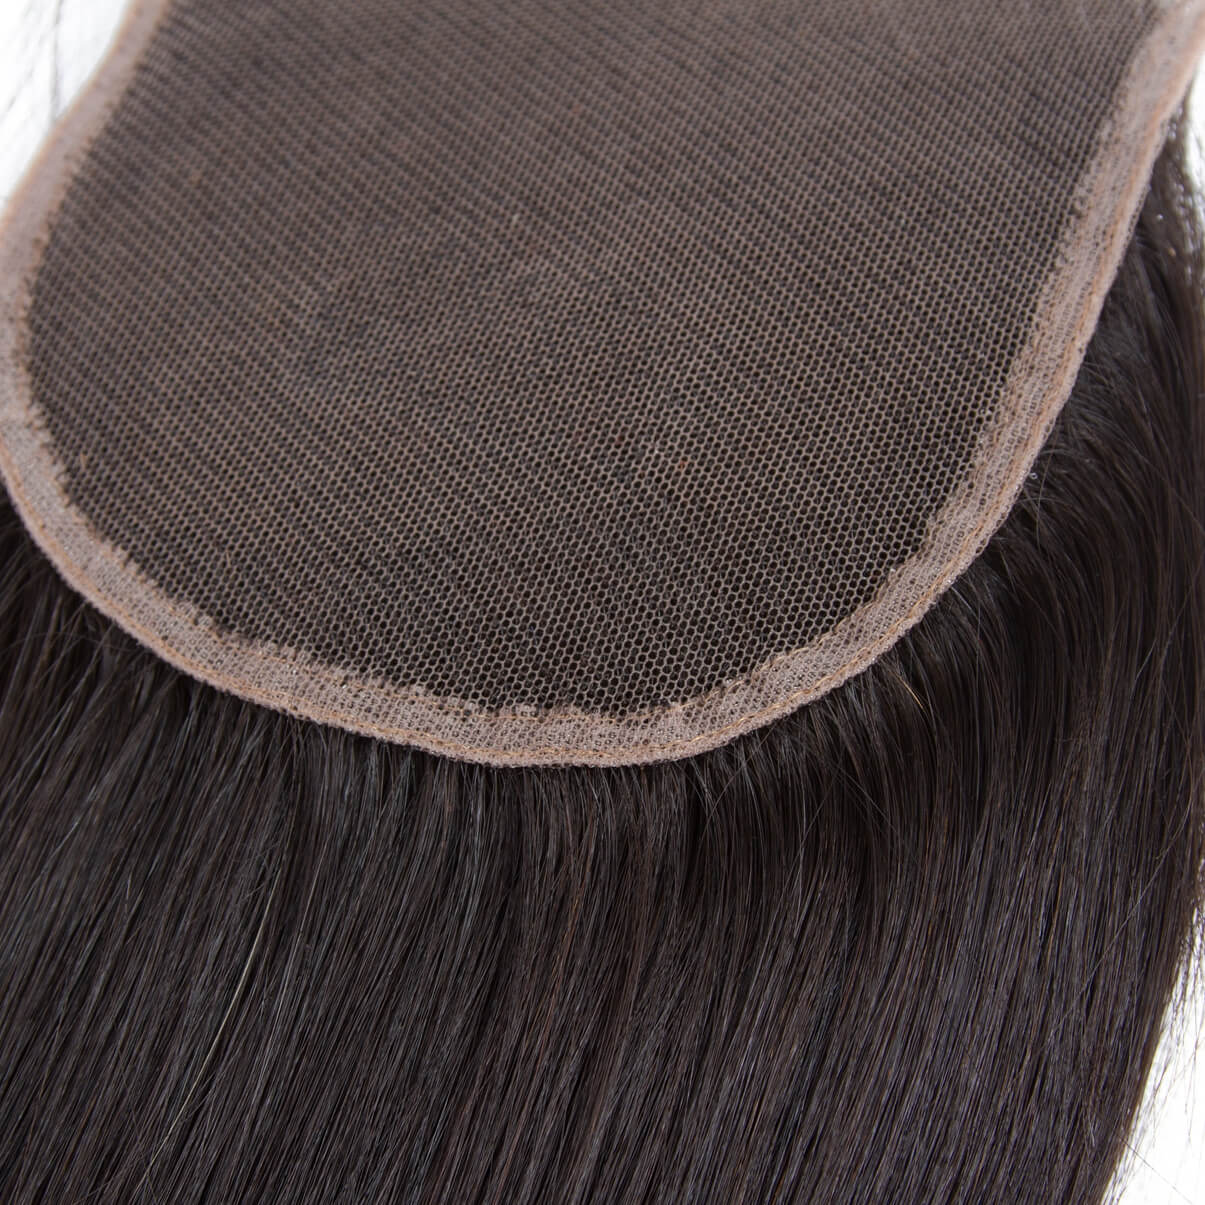 Lakihair 8A Brazilian Straight Hair 3 Bundles With Closure 4x4 Unprocessed Virgin Human Hair Bundles